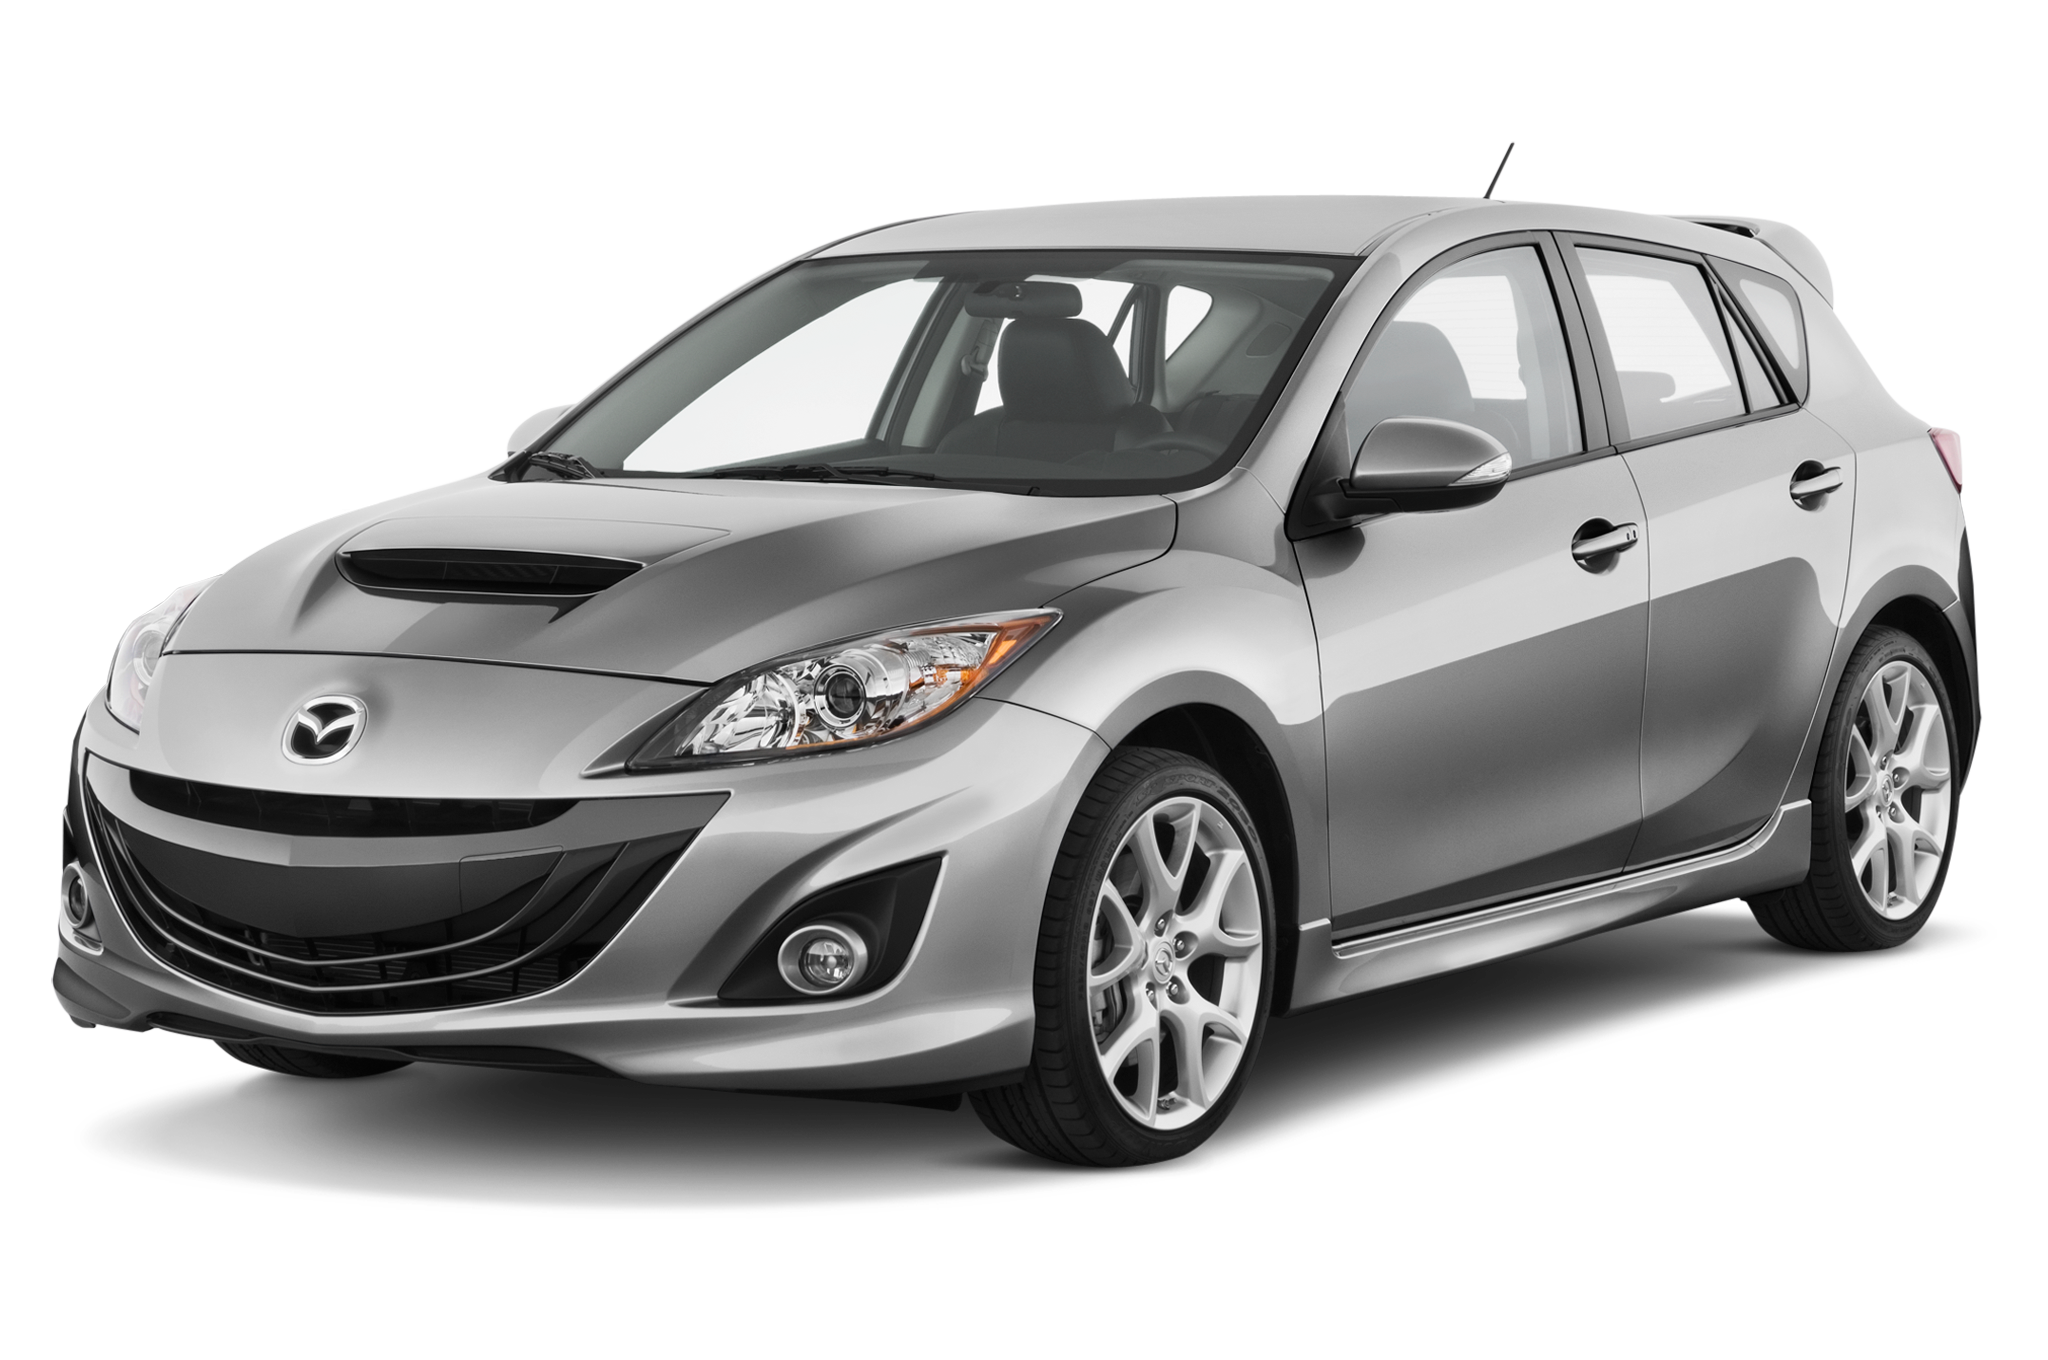 Mazdaspeed Grand Touring Specs